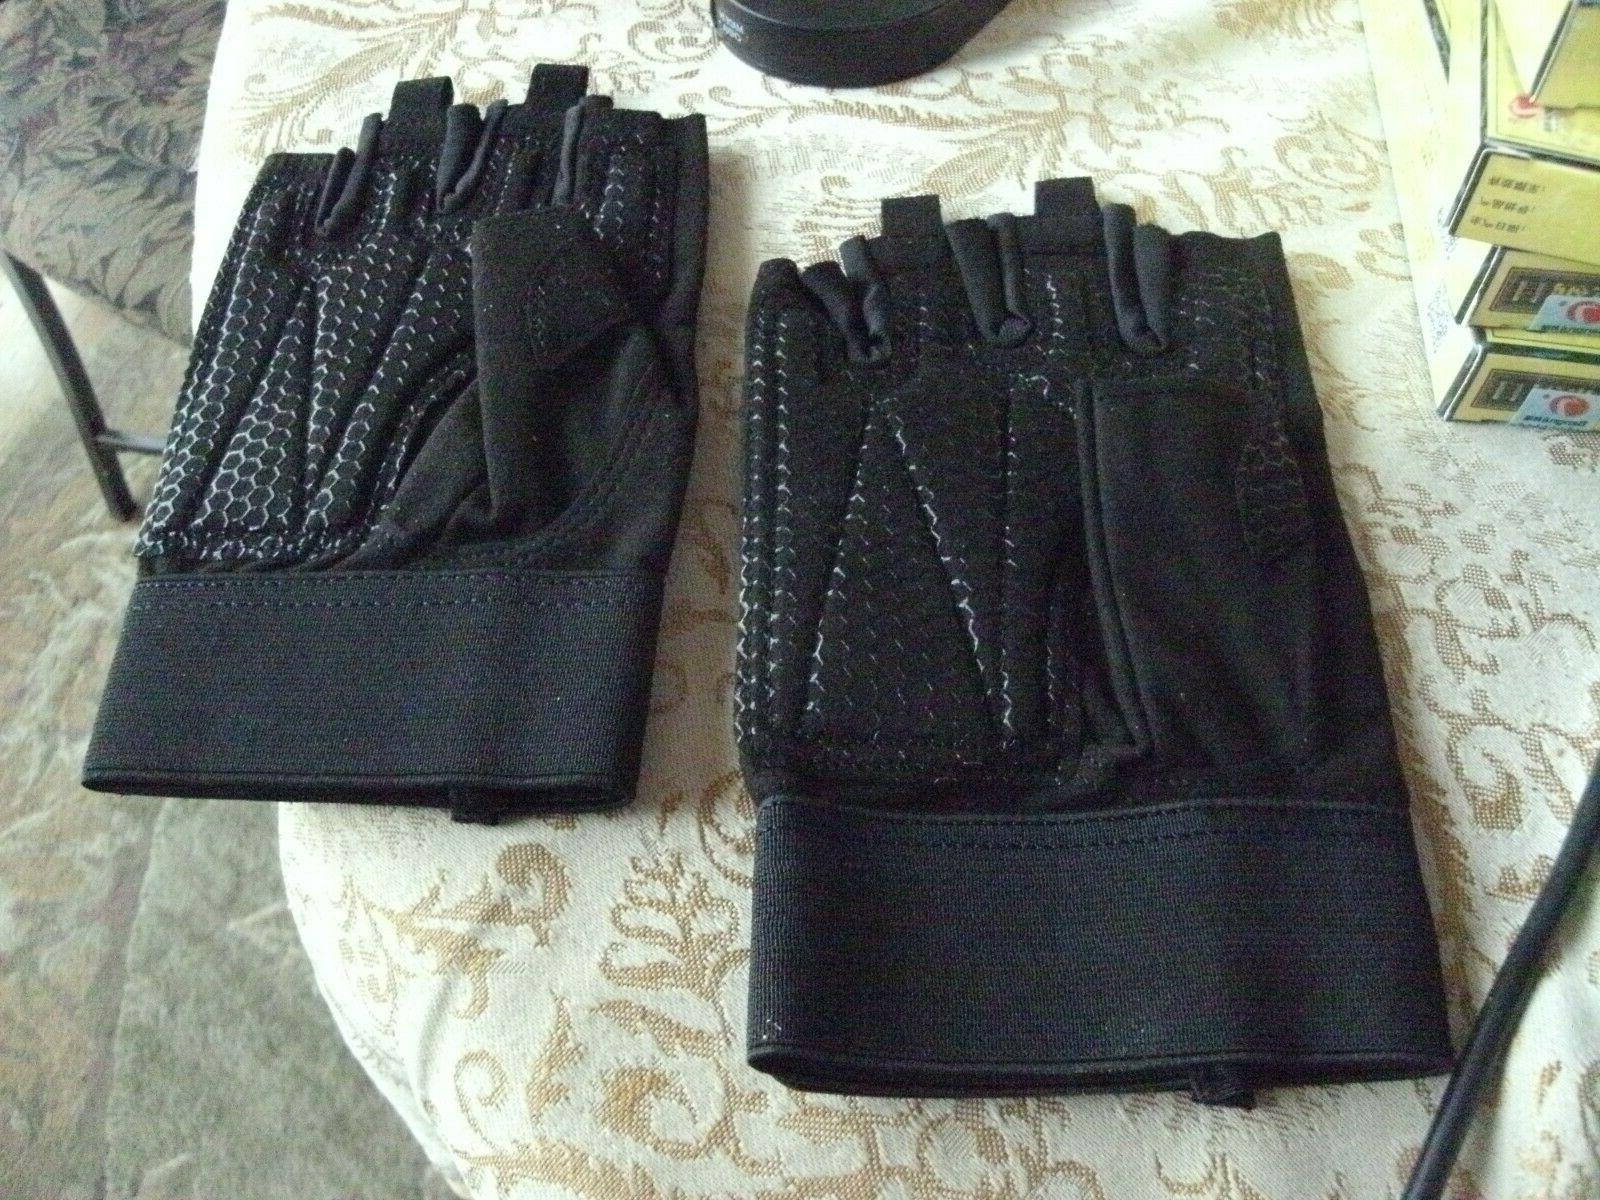 2# Trideer Gloves Full Palm Protection & Extra Gym